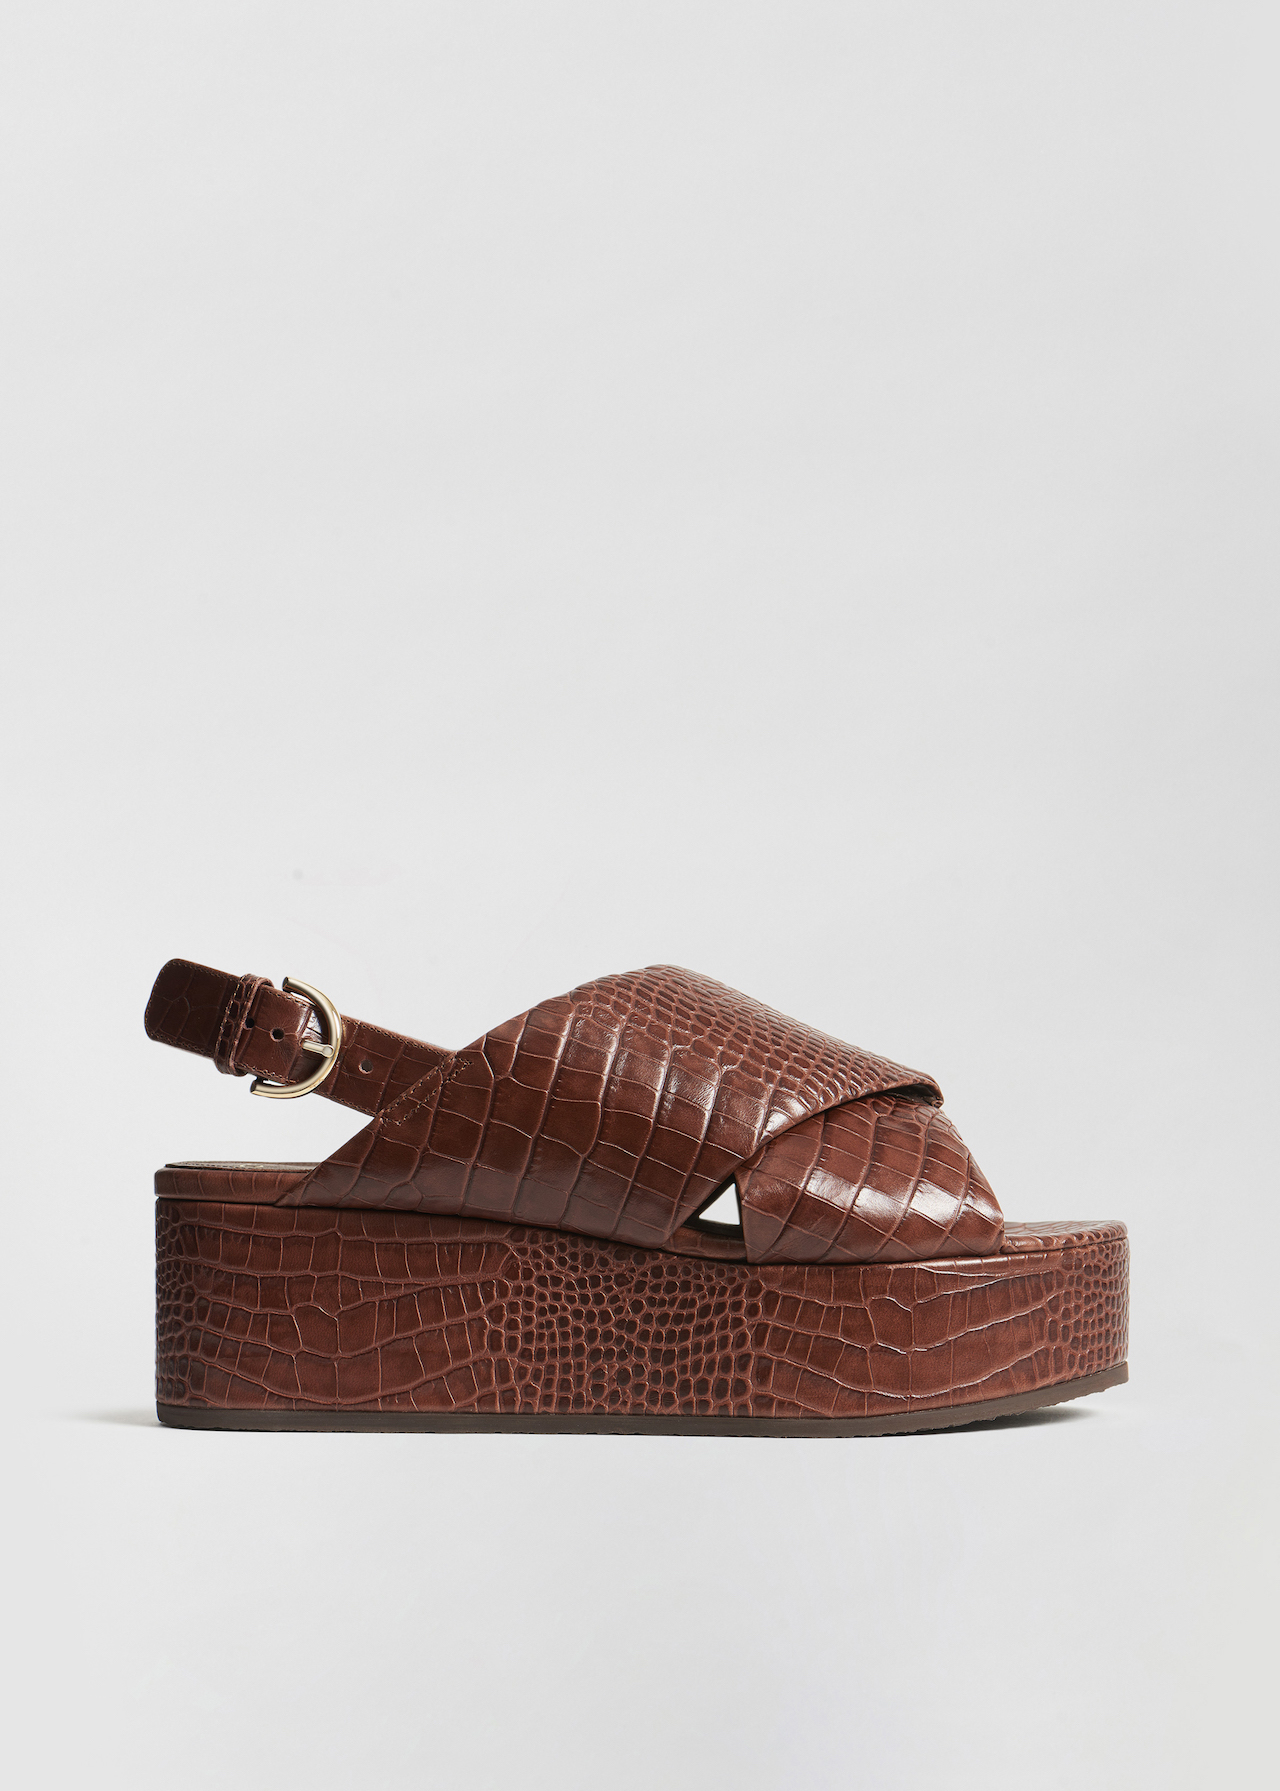 Platform Sandal in Embossed Leather - Black in Dark Brown Croc by Co Collections